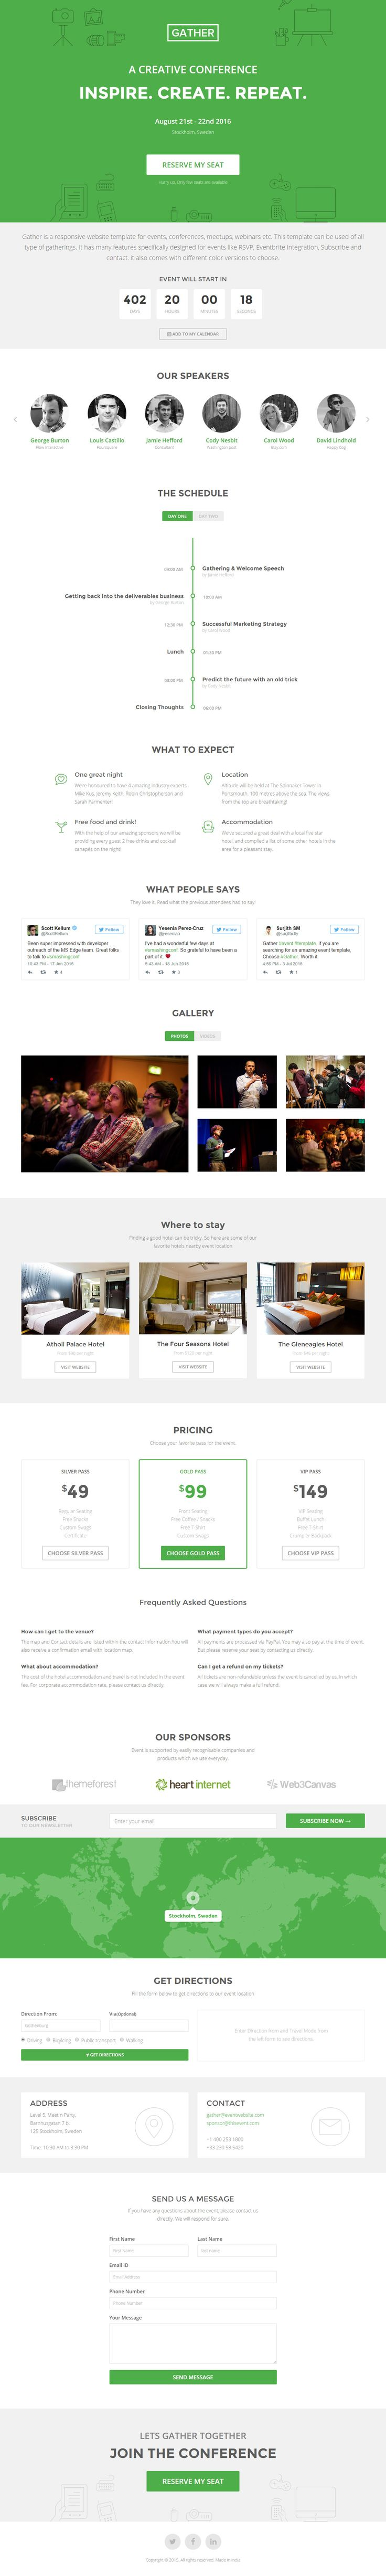 'Gather' is a responsive One Page HTML template suited for your upcoming event. Scrolljacking aside, the template comes packed with some neat features including integration with PayPal, Eventbrite and MailChimp. I've always been a fan of icon backgrounds and it looks good here. Last feature worth noting is the schedule vertical timeline has a neat day switcher and the responsive adaption works well.